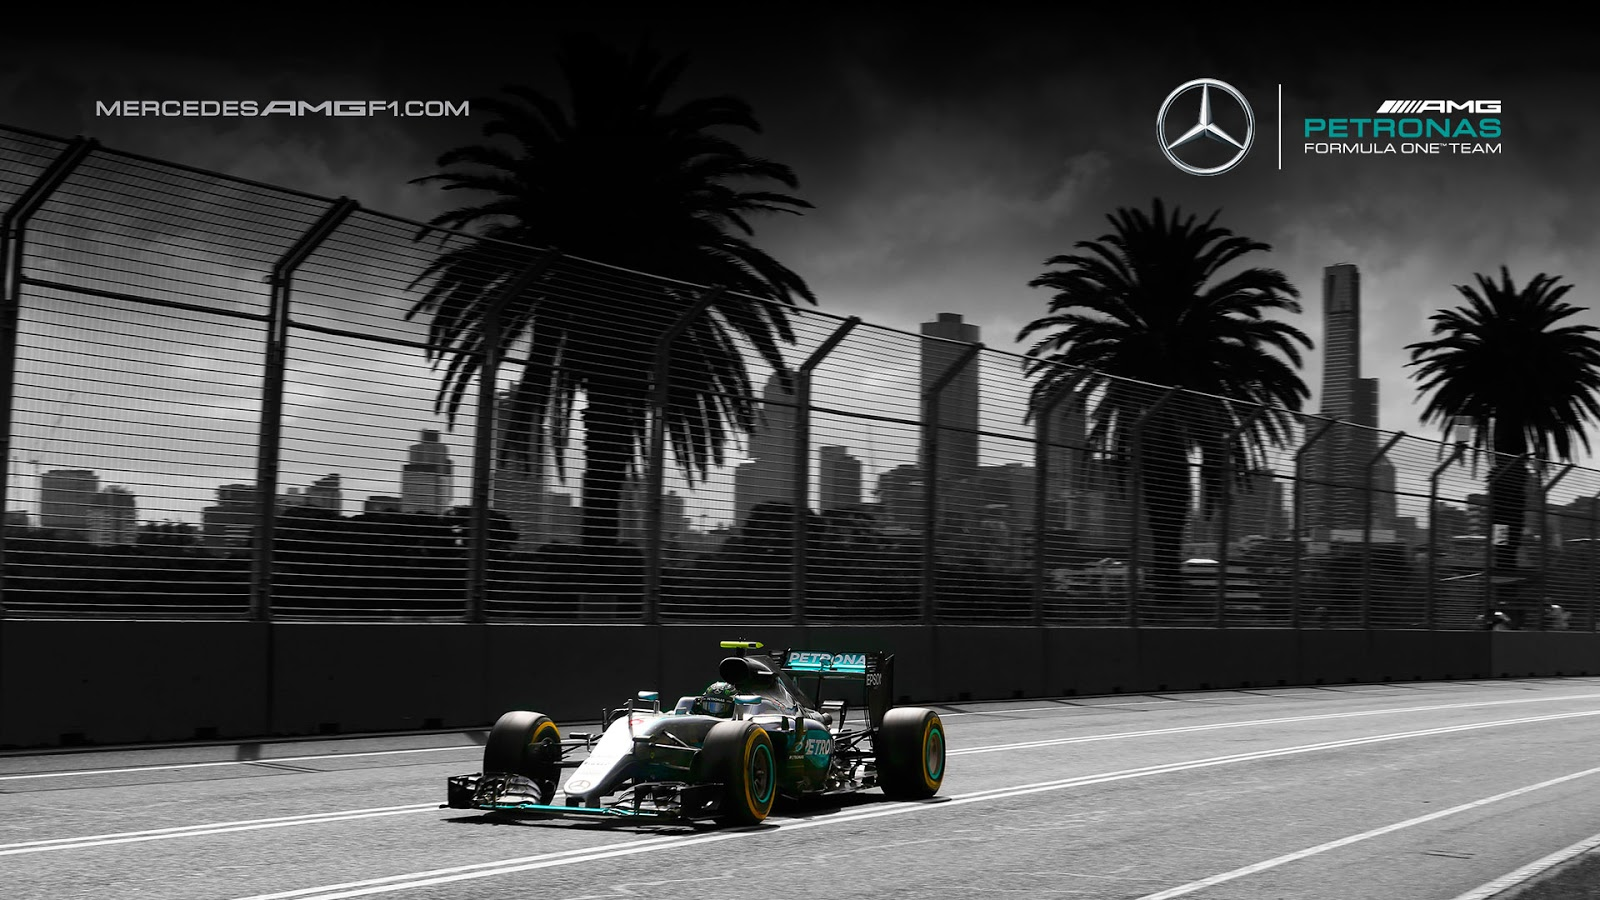 mercedes amg petronas w07 2016 f1 wallpaper kfzoom. Black Bedroom Furniture Sets. Home Design Ideas